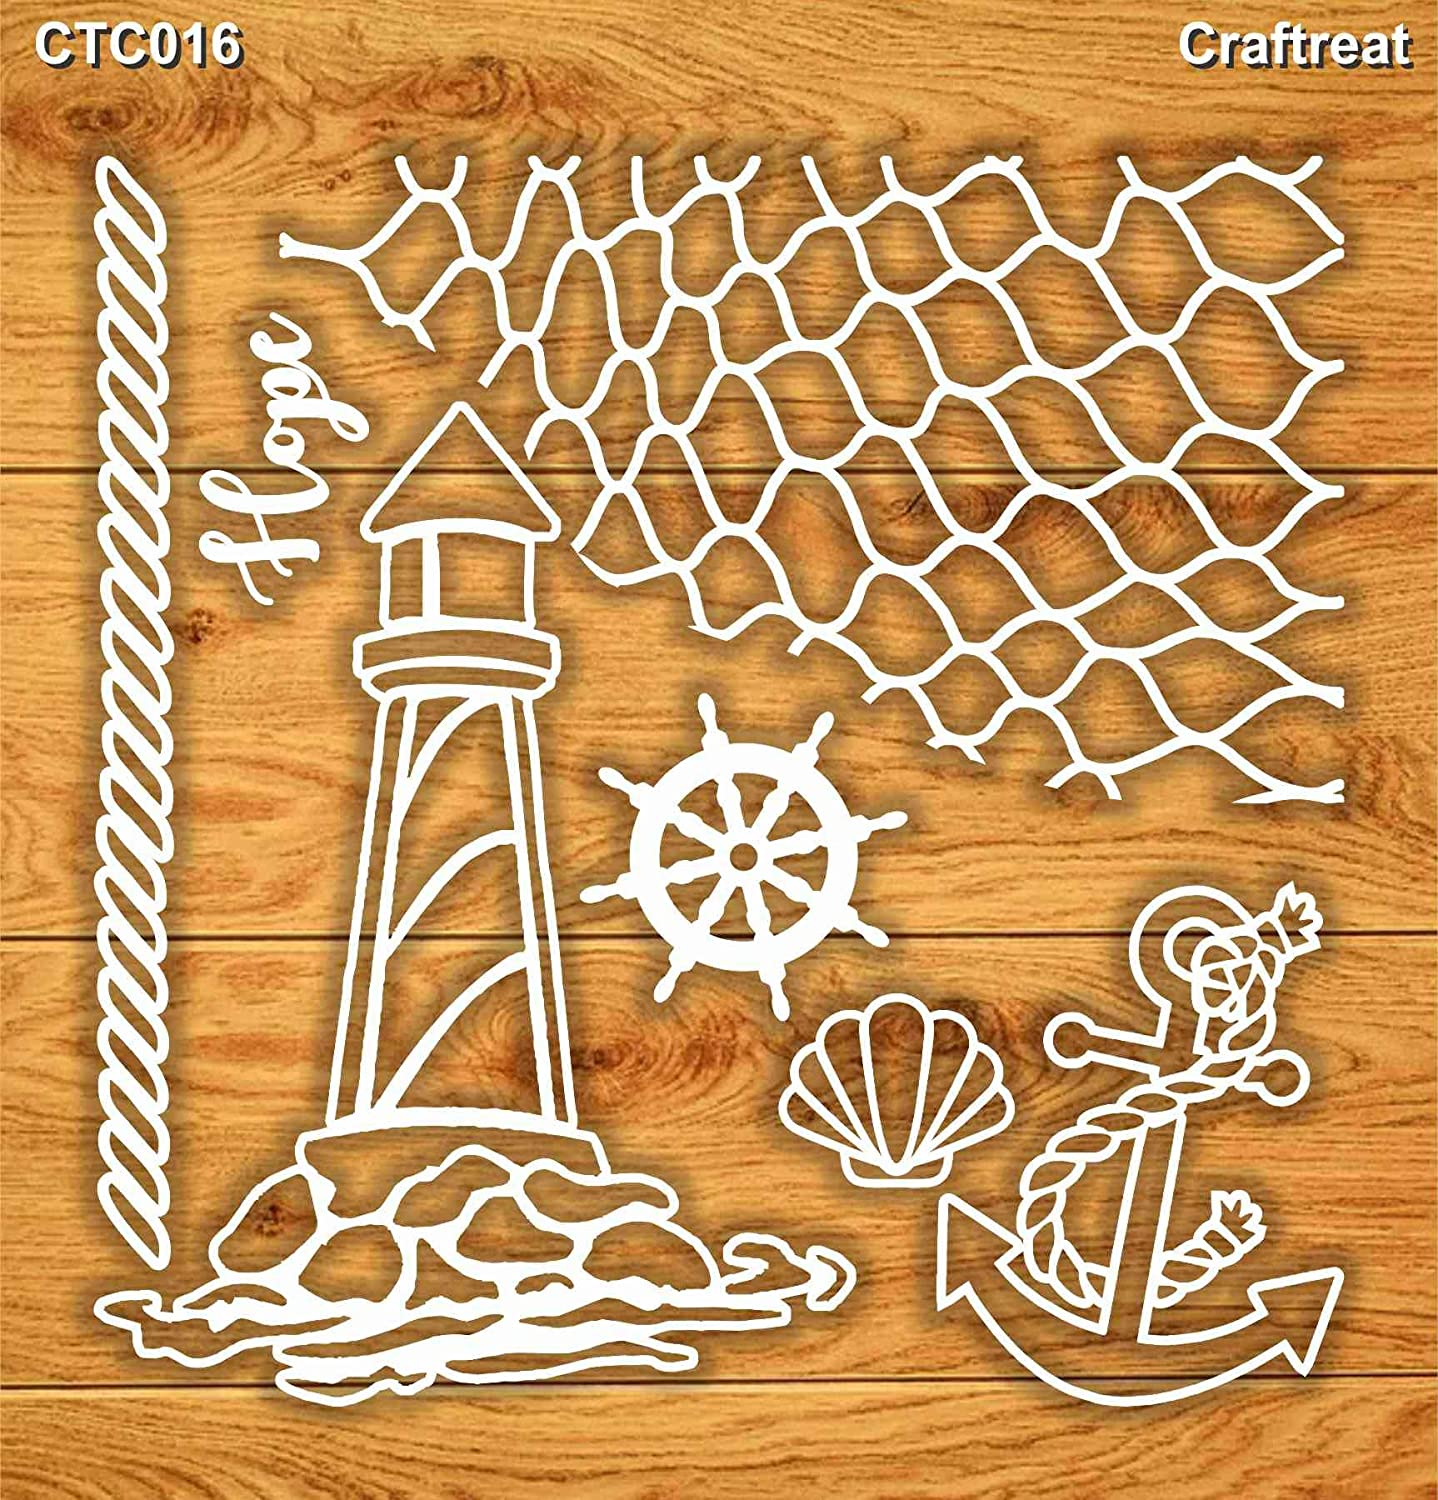 Size: 5.5X6 Inches Steampunk Laser cut Chipboard for Crafts Gears Lasercut Chipboard Embellishments for Card Making and Scrapbooking CrafTreat Lasercut Chipboard Gears